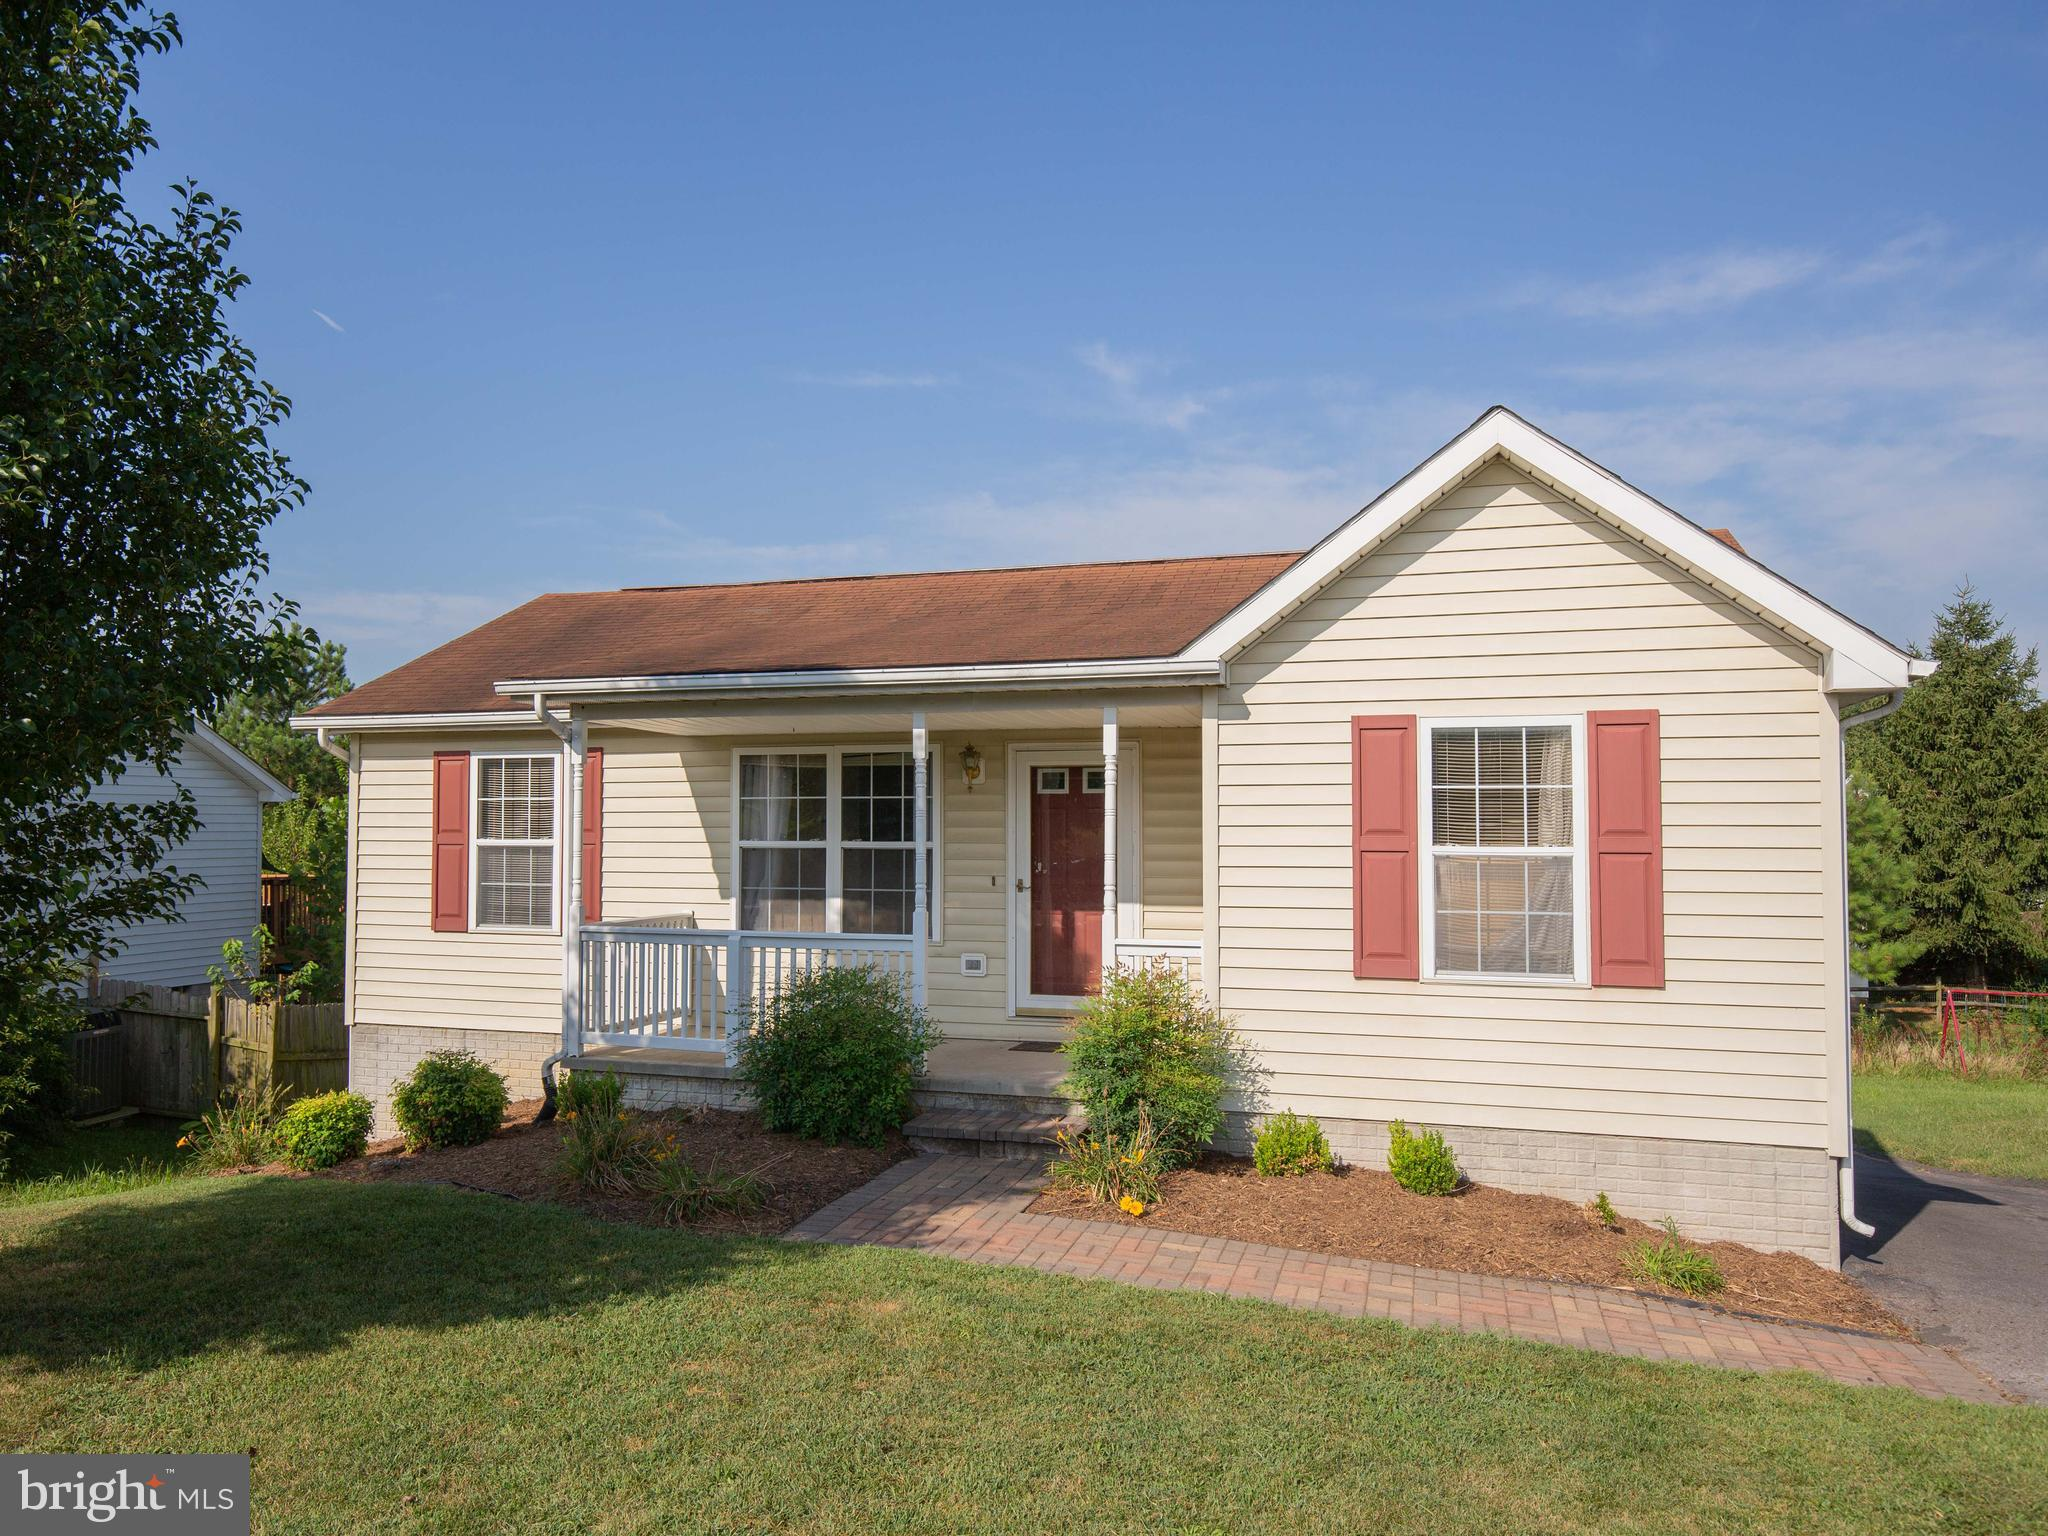 Cute, sunny three-bedroom home just 10 minutes from WVU Medical center/I81 in once direction and 10